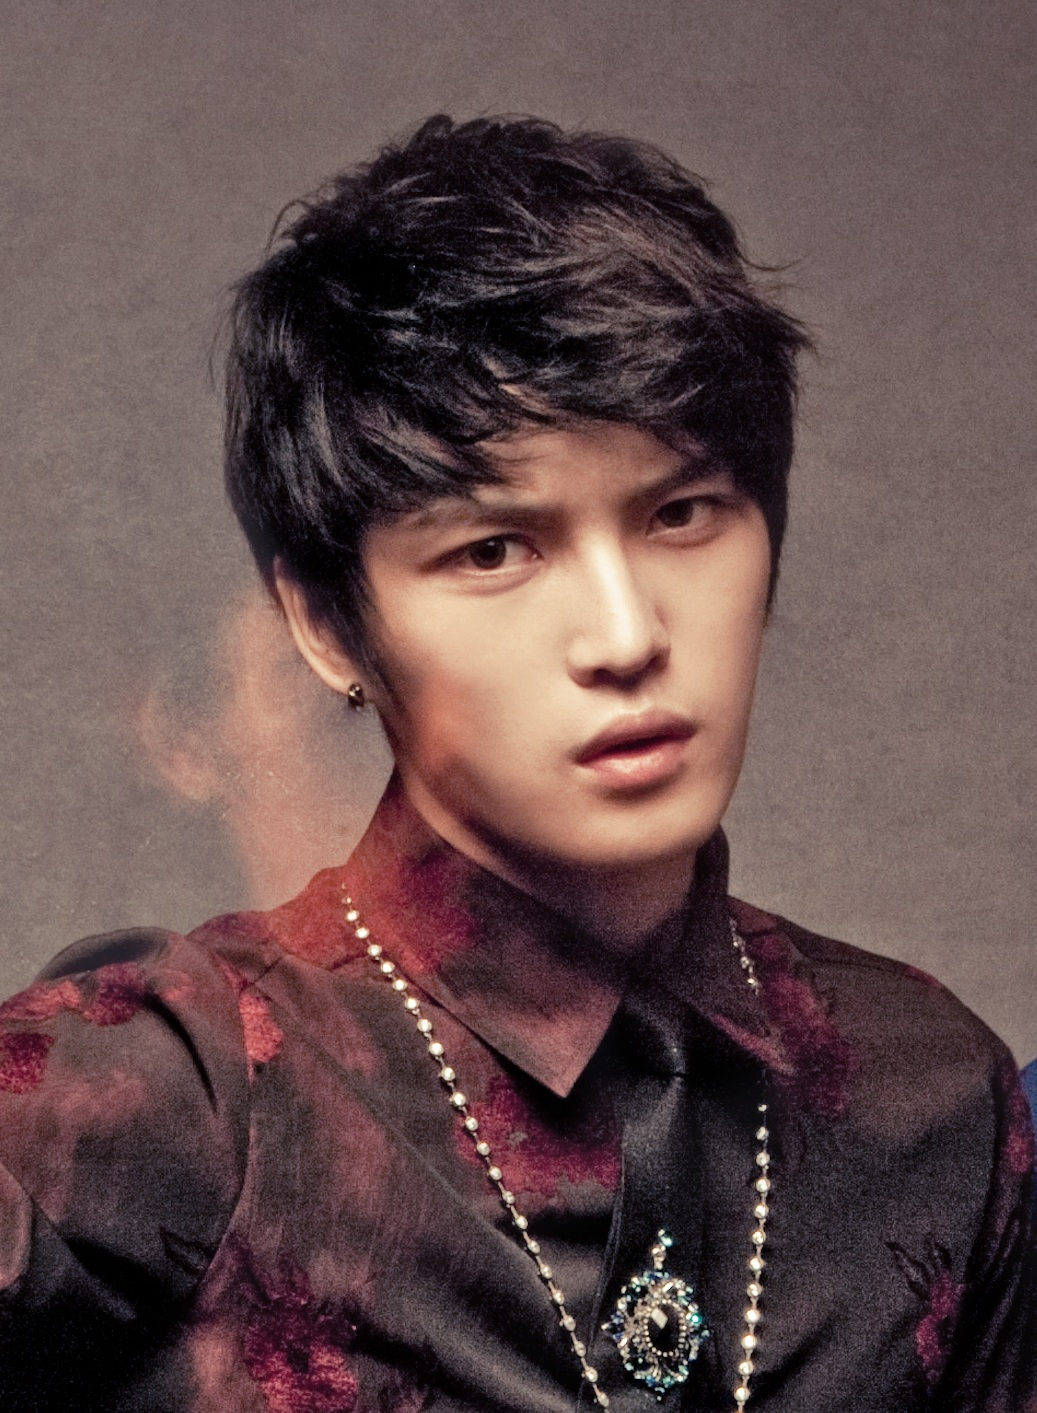 Kim Jaejoong earned a  million dollar salary - leaving the net worth at 1 million in 2018